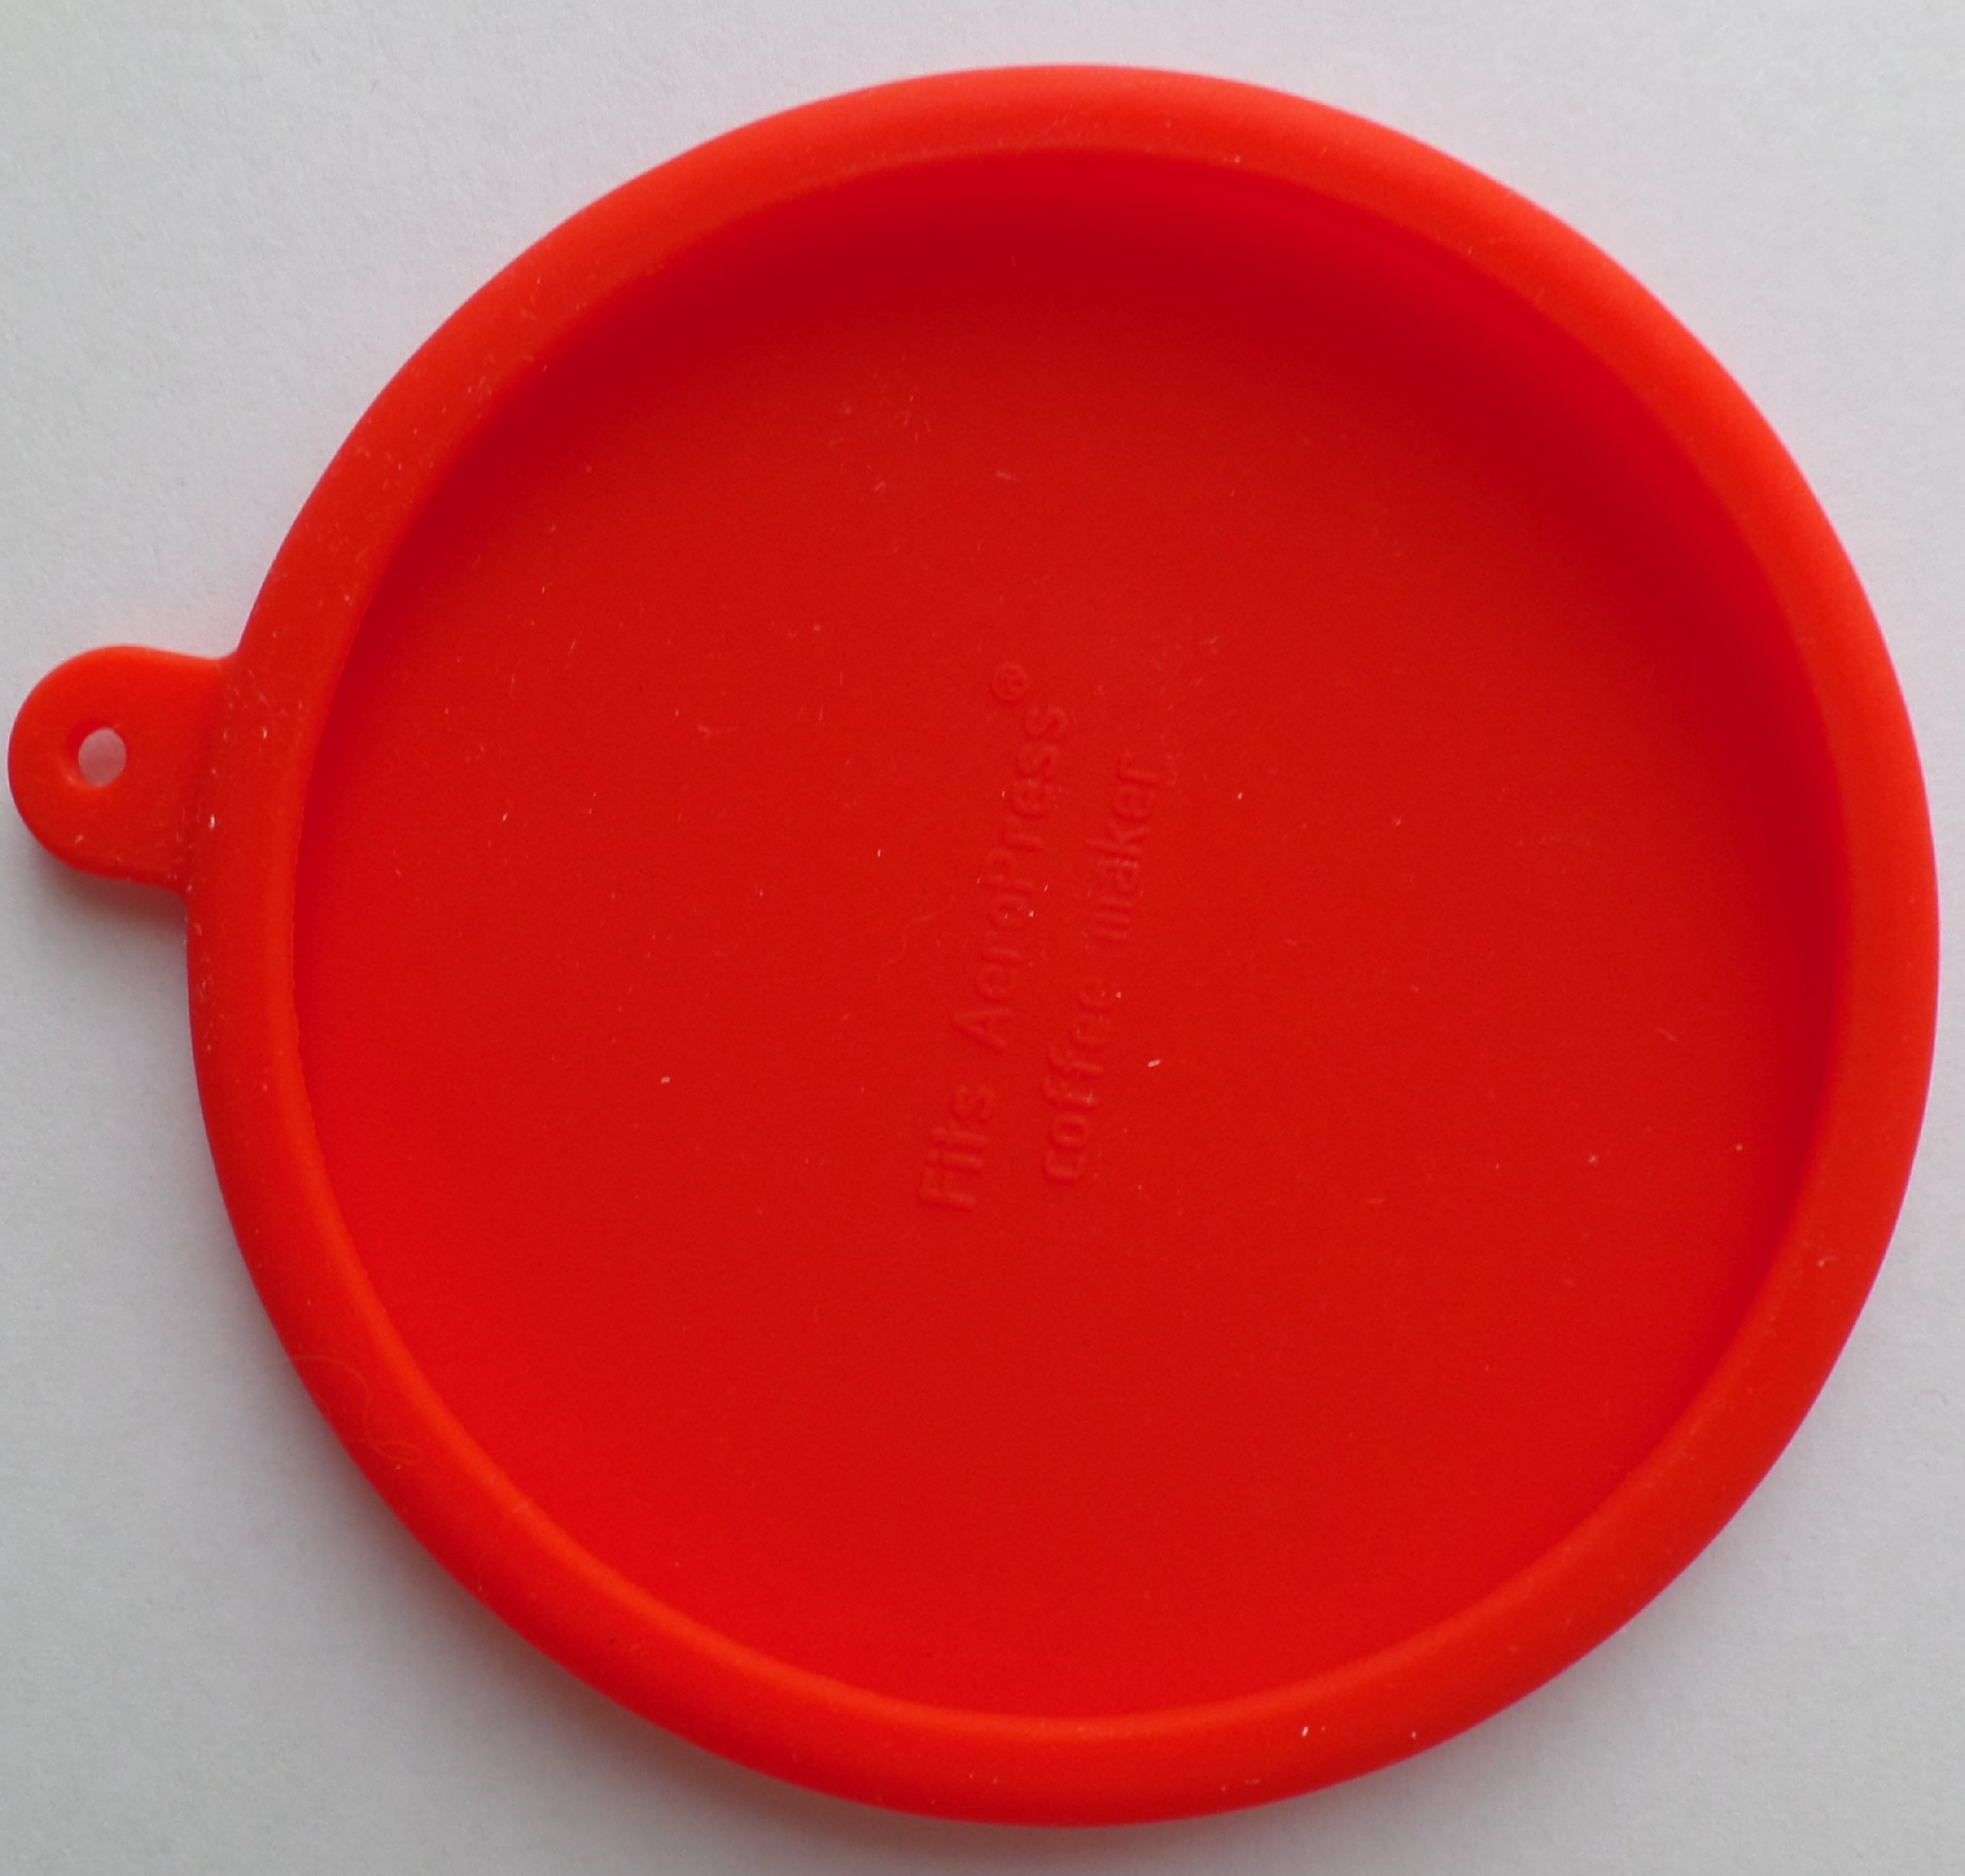 The Handy House Travel Cap for AeroPress Coffee Maker, Red by The Handy House (Image #3)